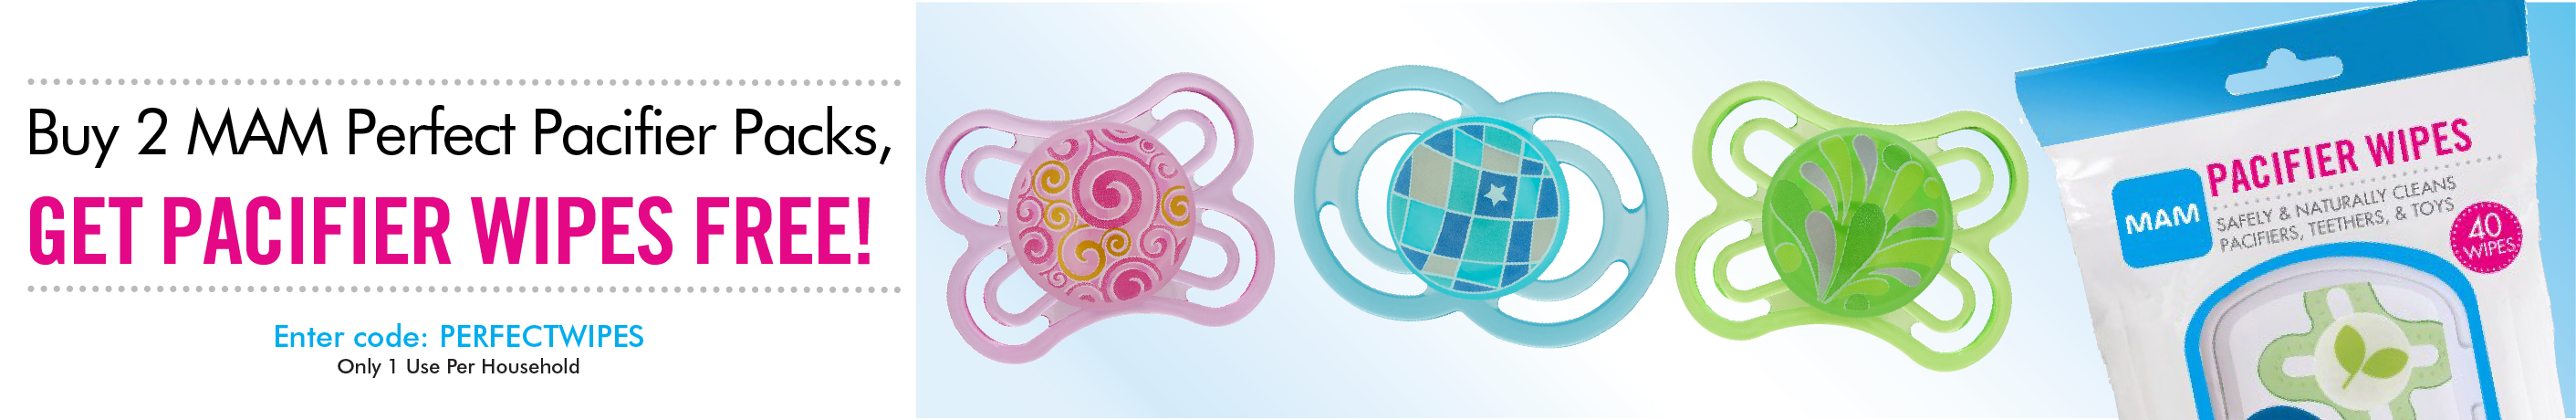 Buy 2 MAM Perfect Pacifiers, Get MAM Pacifier Wipes FREE! Enter code: PERFECTWIPES